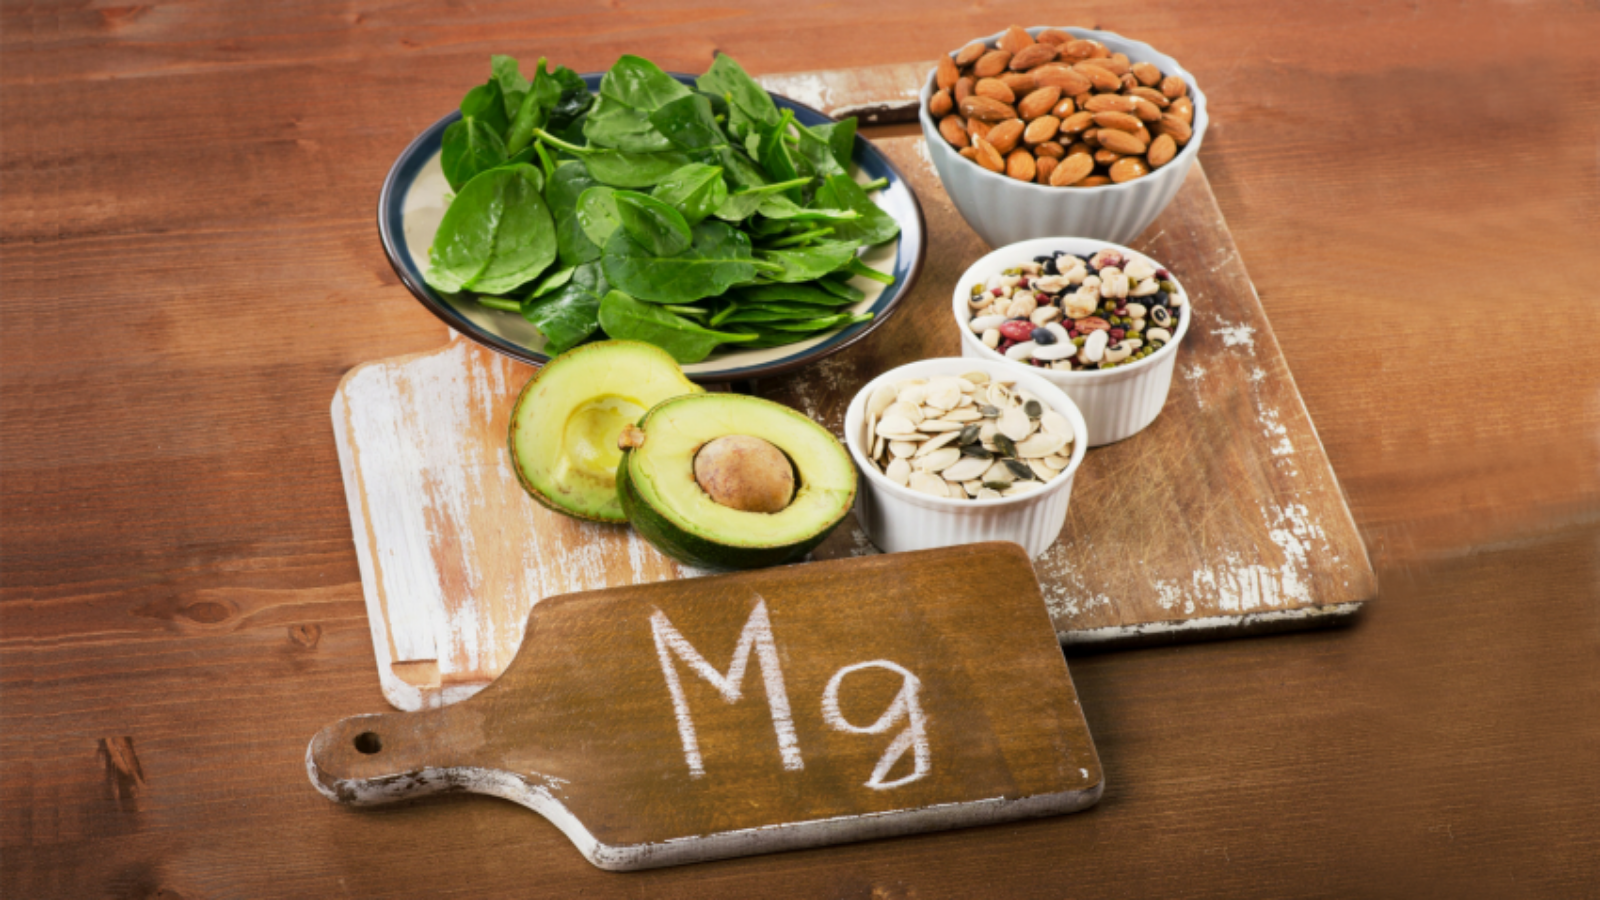 Foods displayed are rich in magnesium